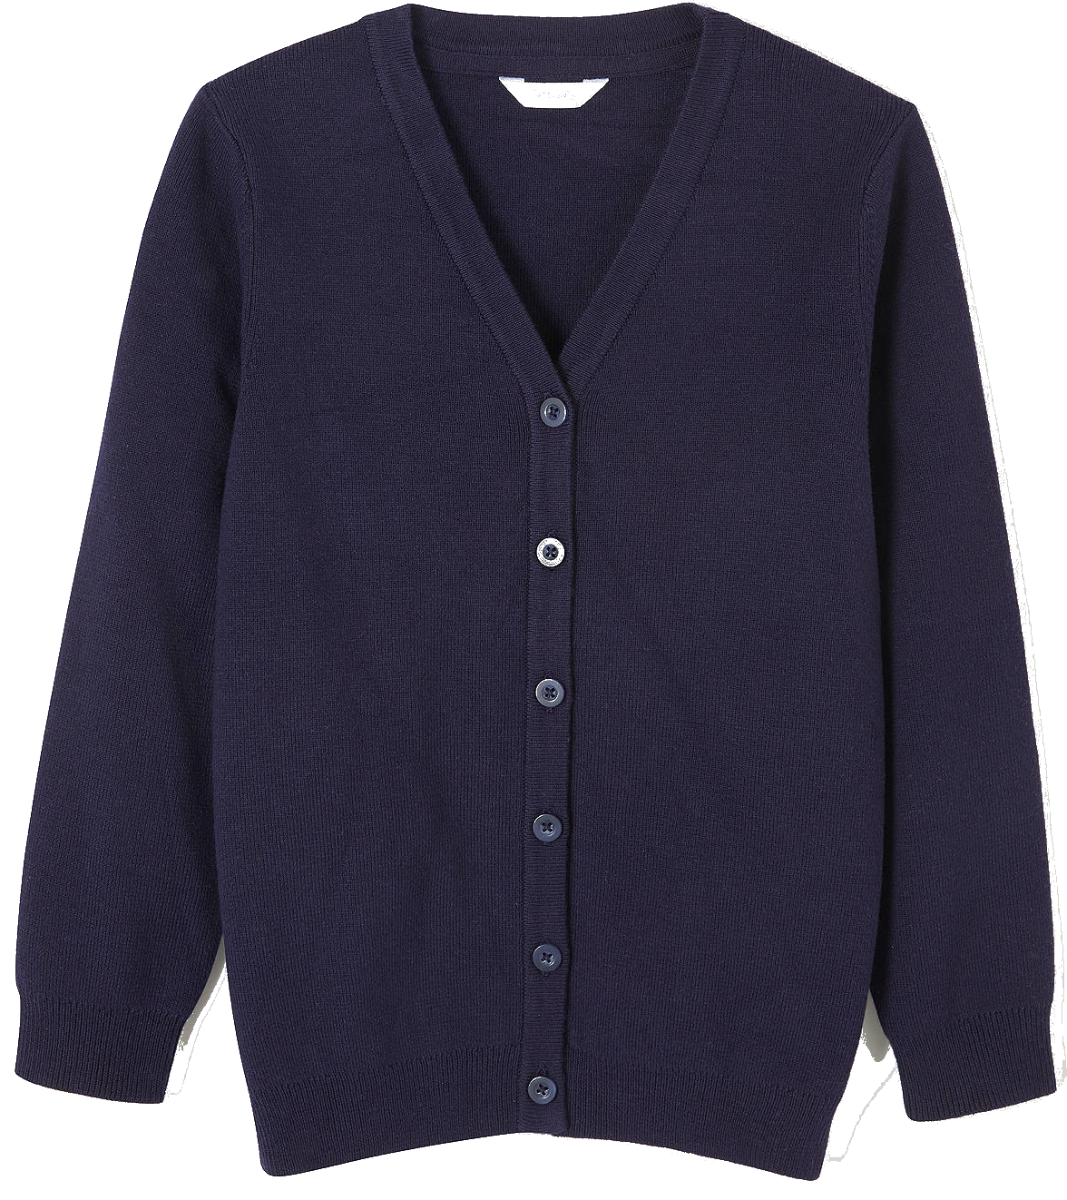 Navy-Knitted-Cardigan